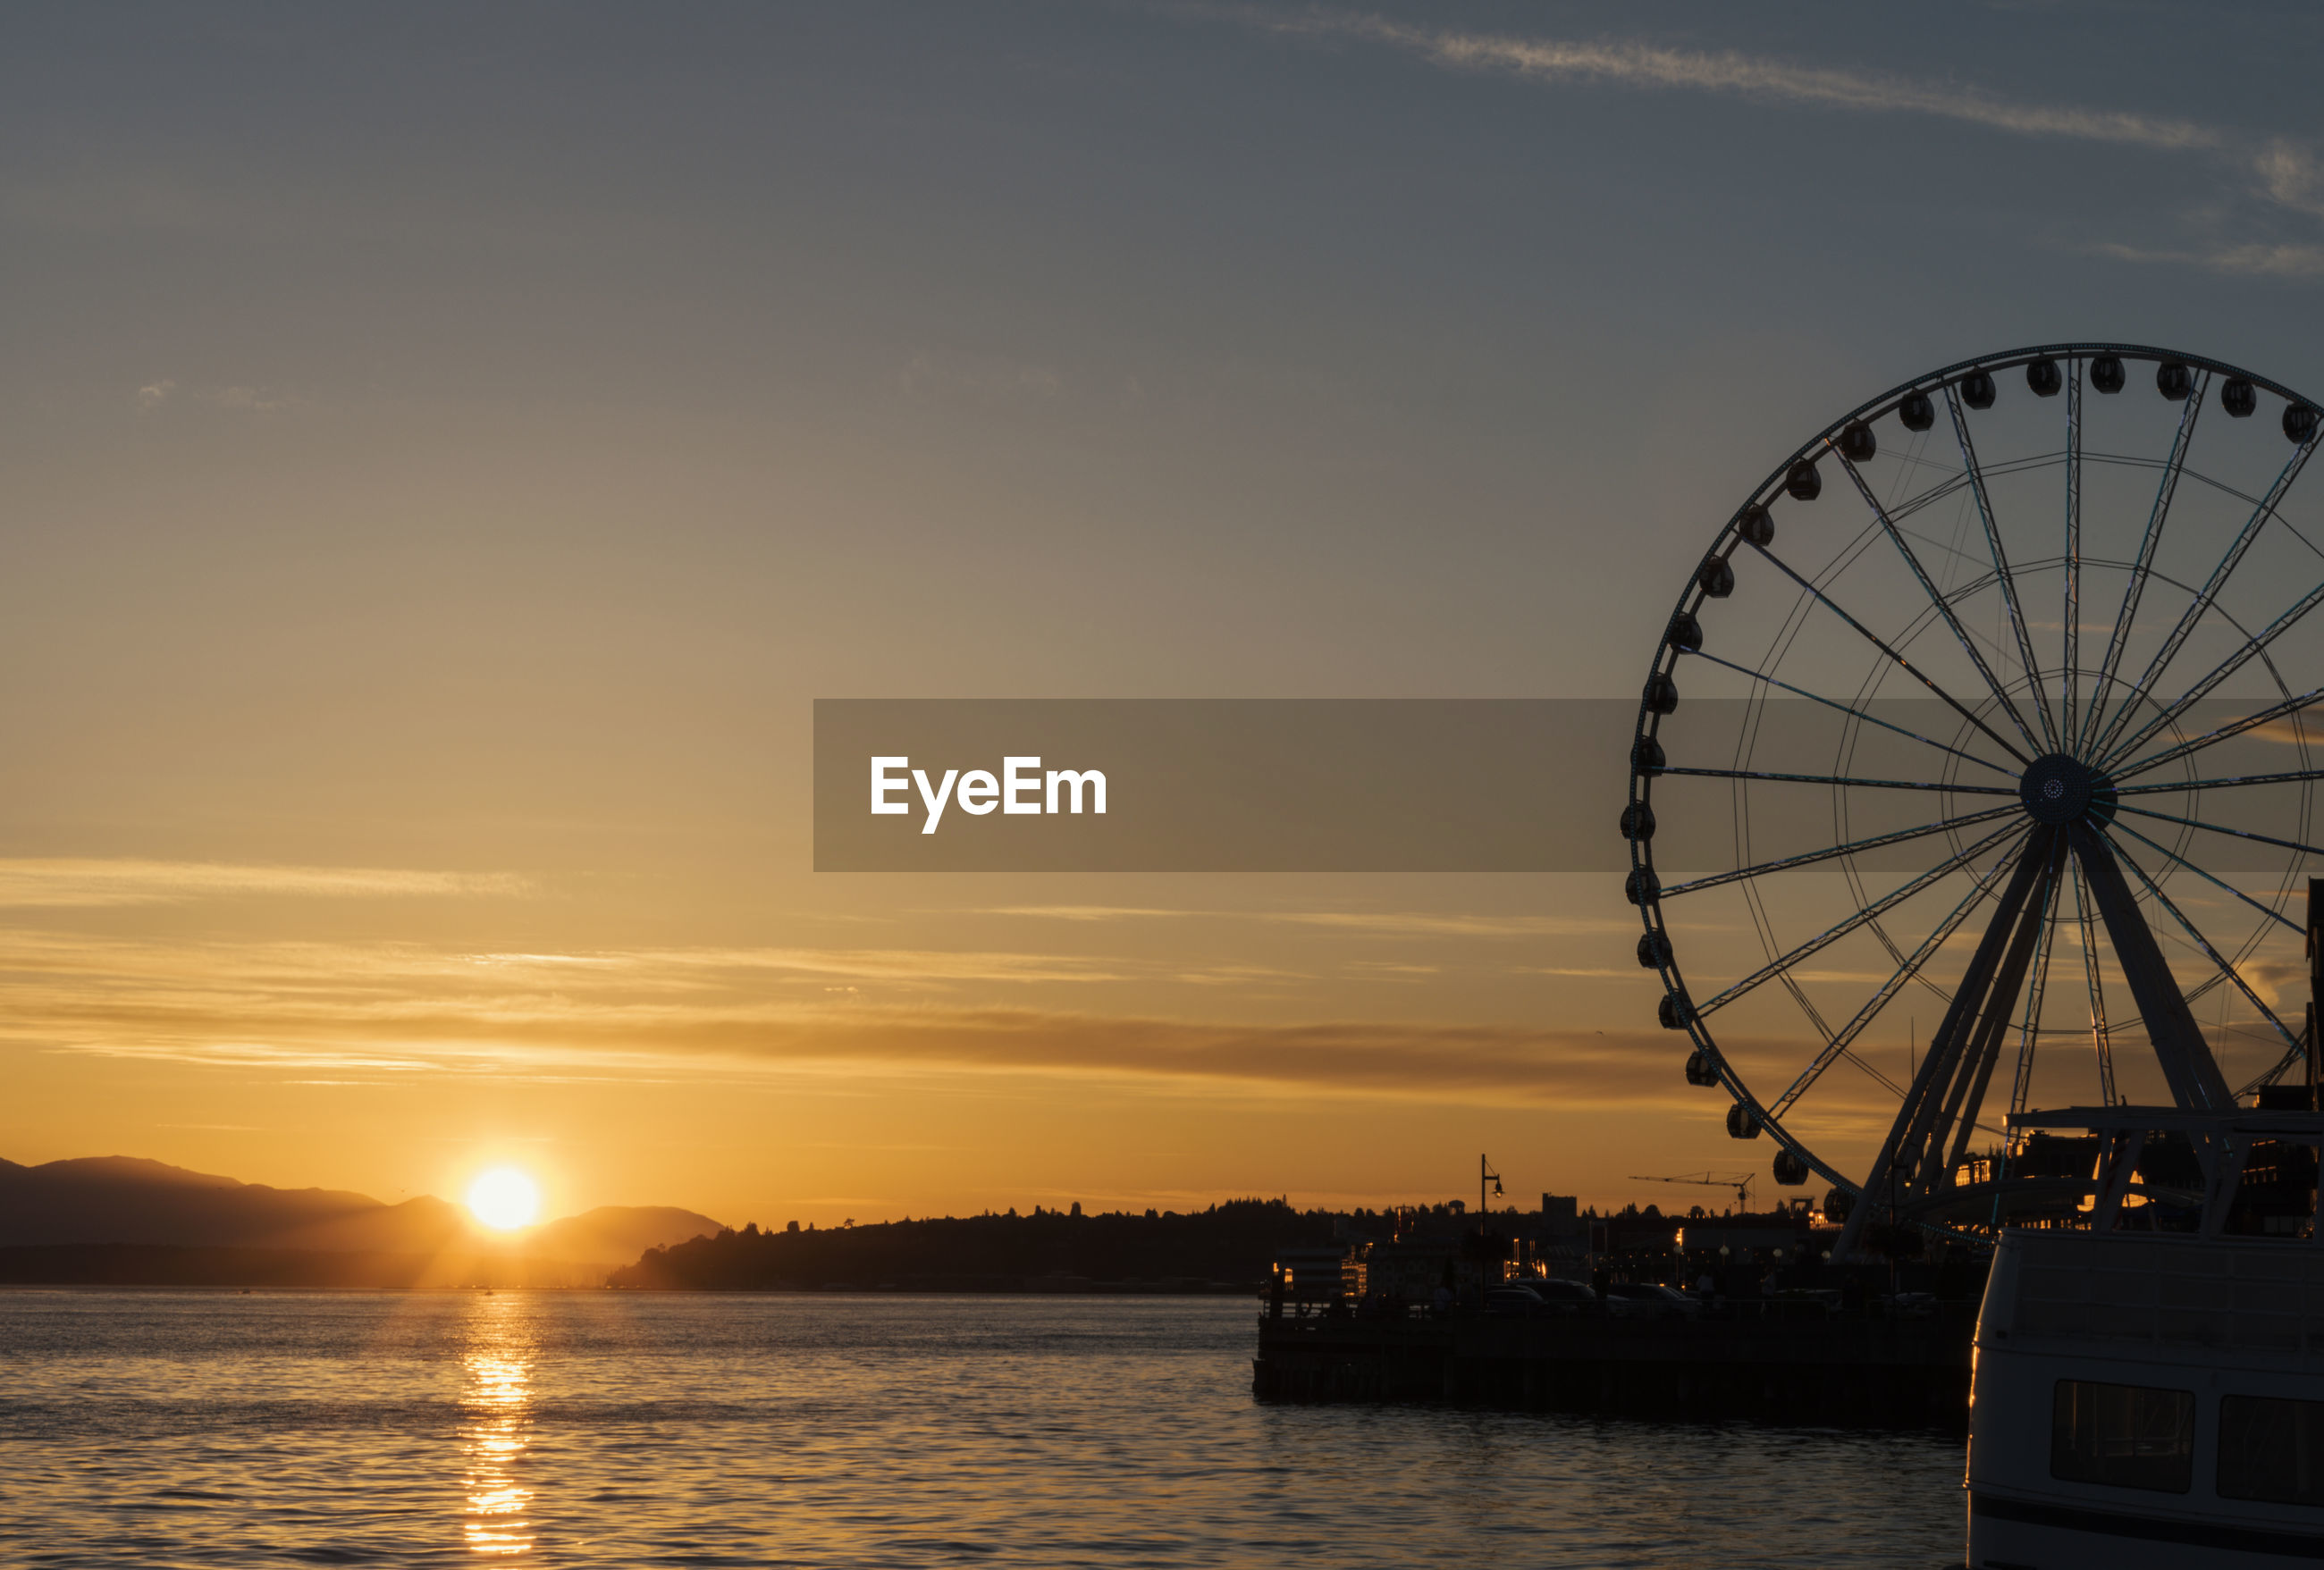 Silhouette ferris wheel by sea against sky during sunset